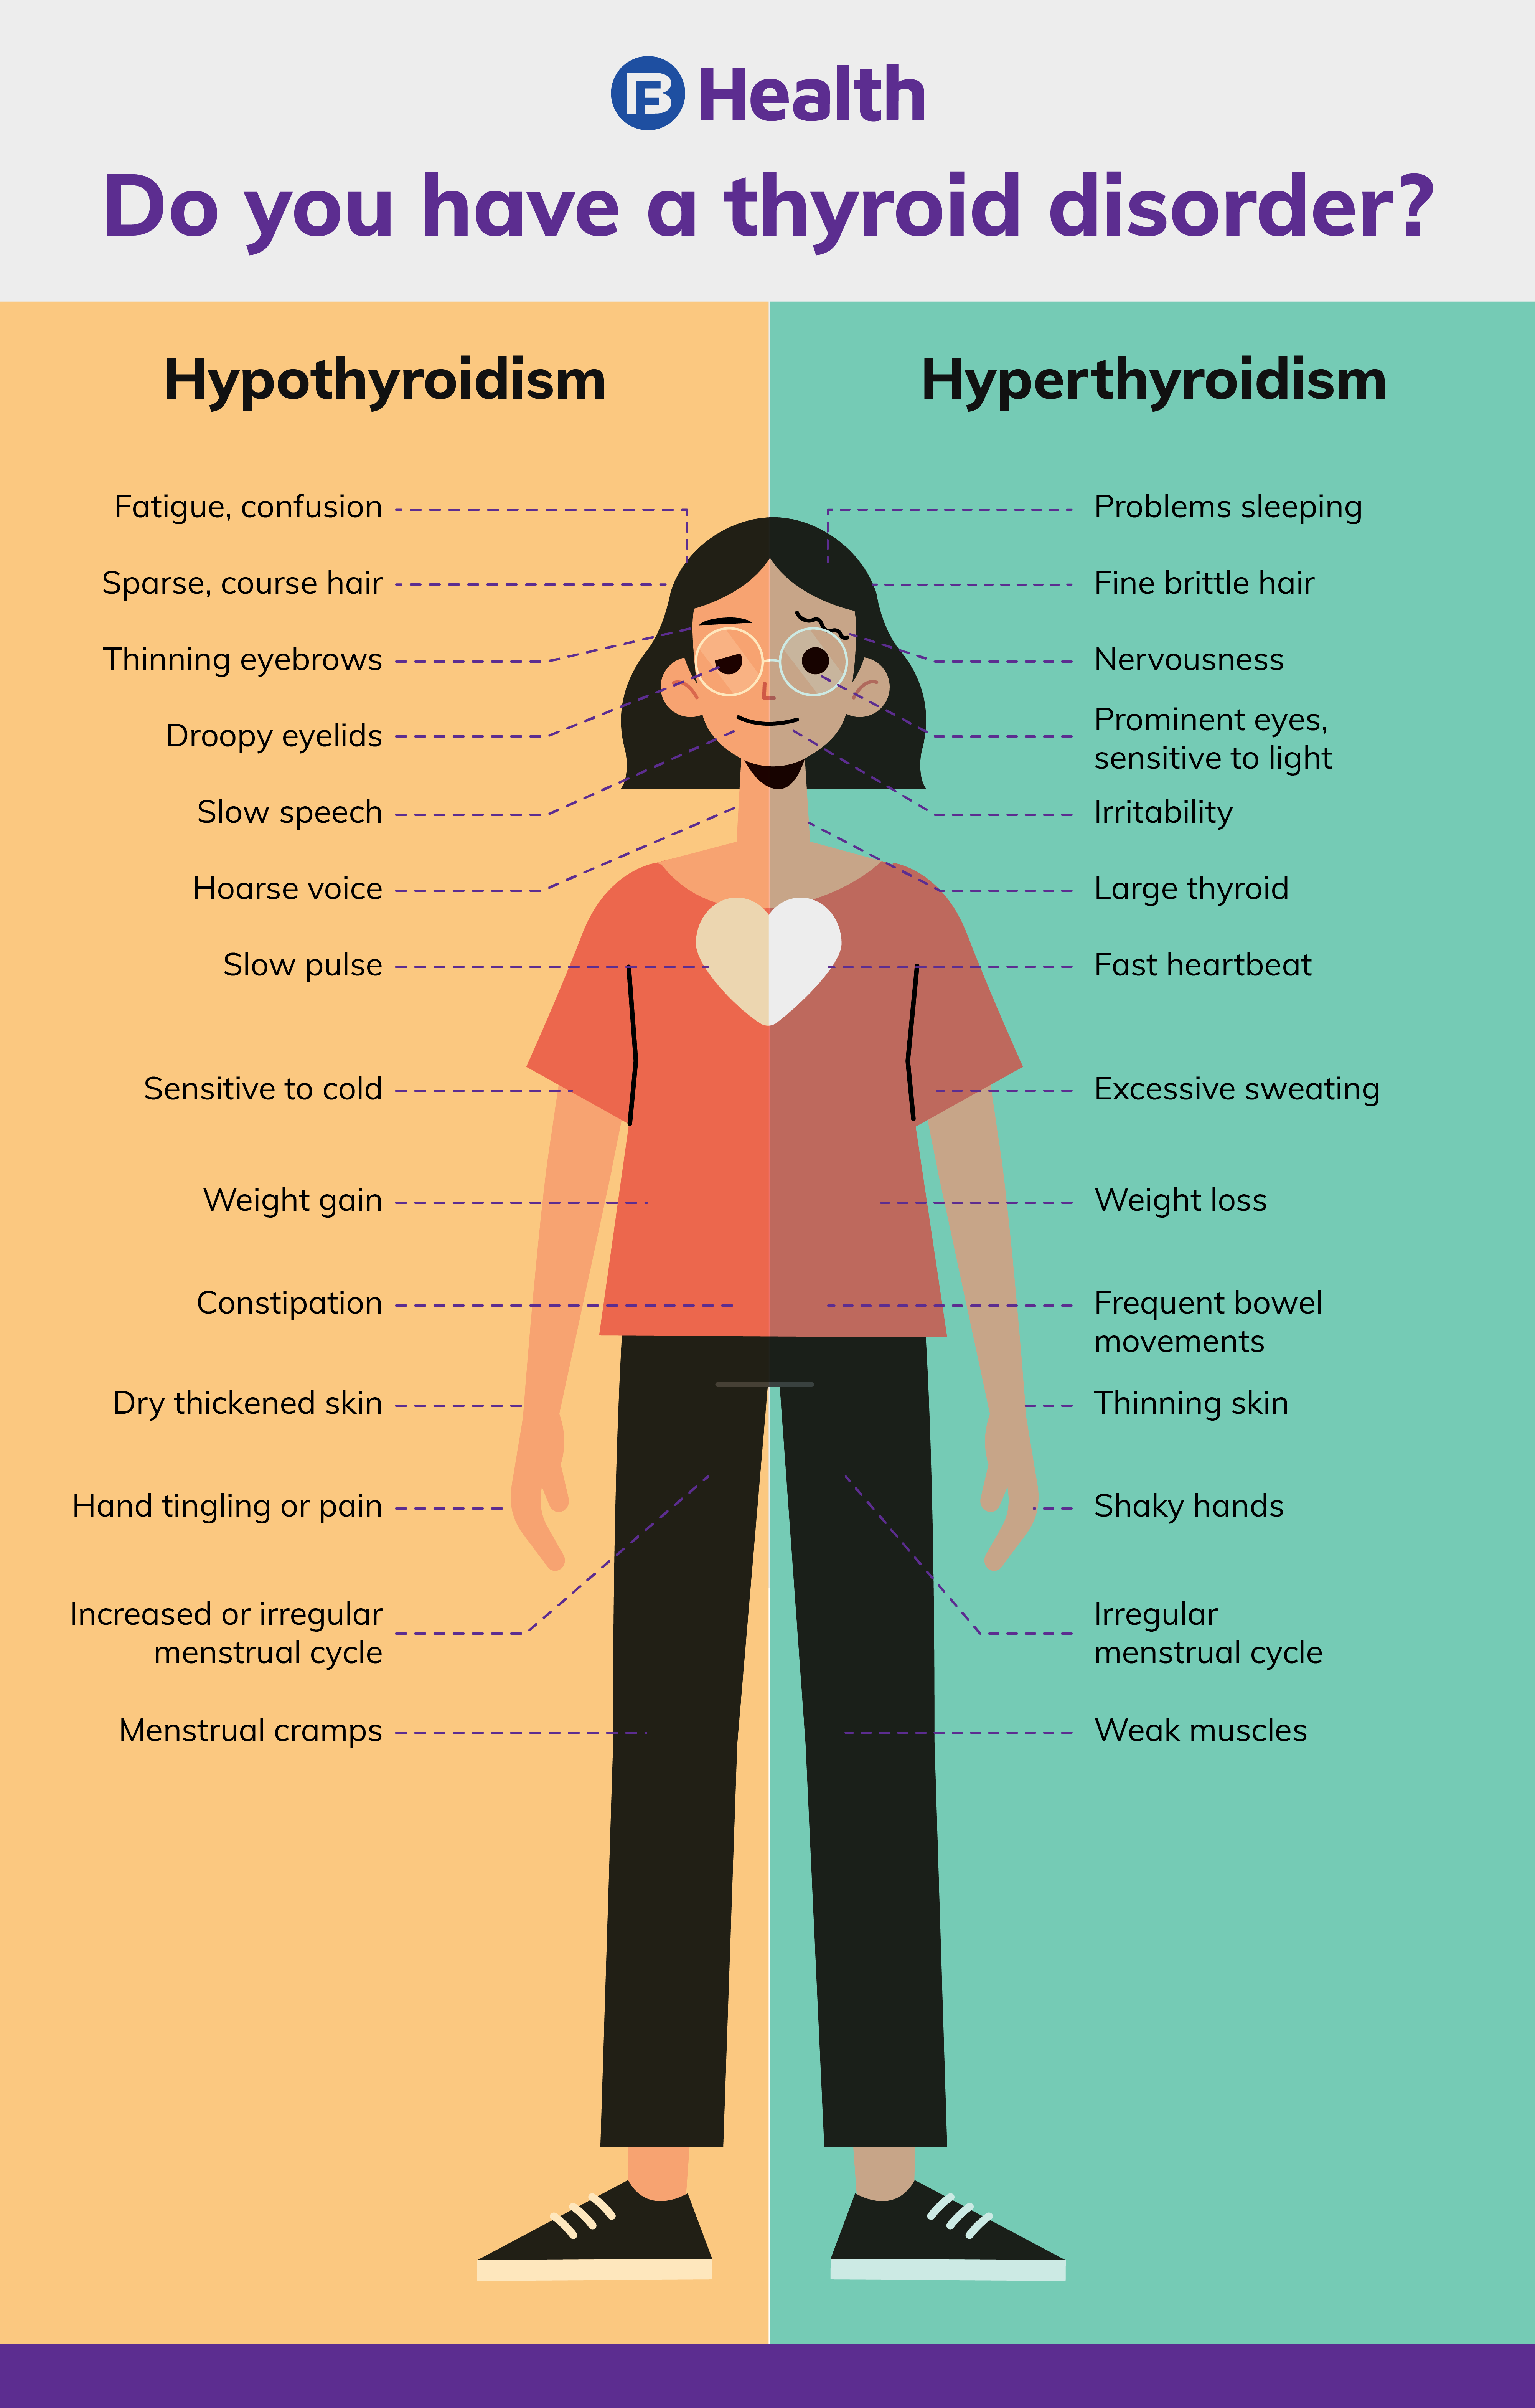 Checking if you have thyroid disorder